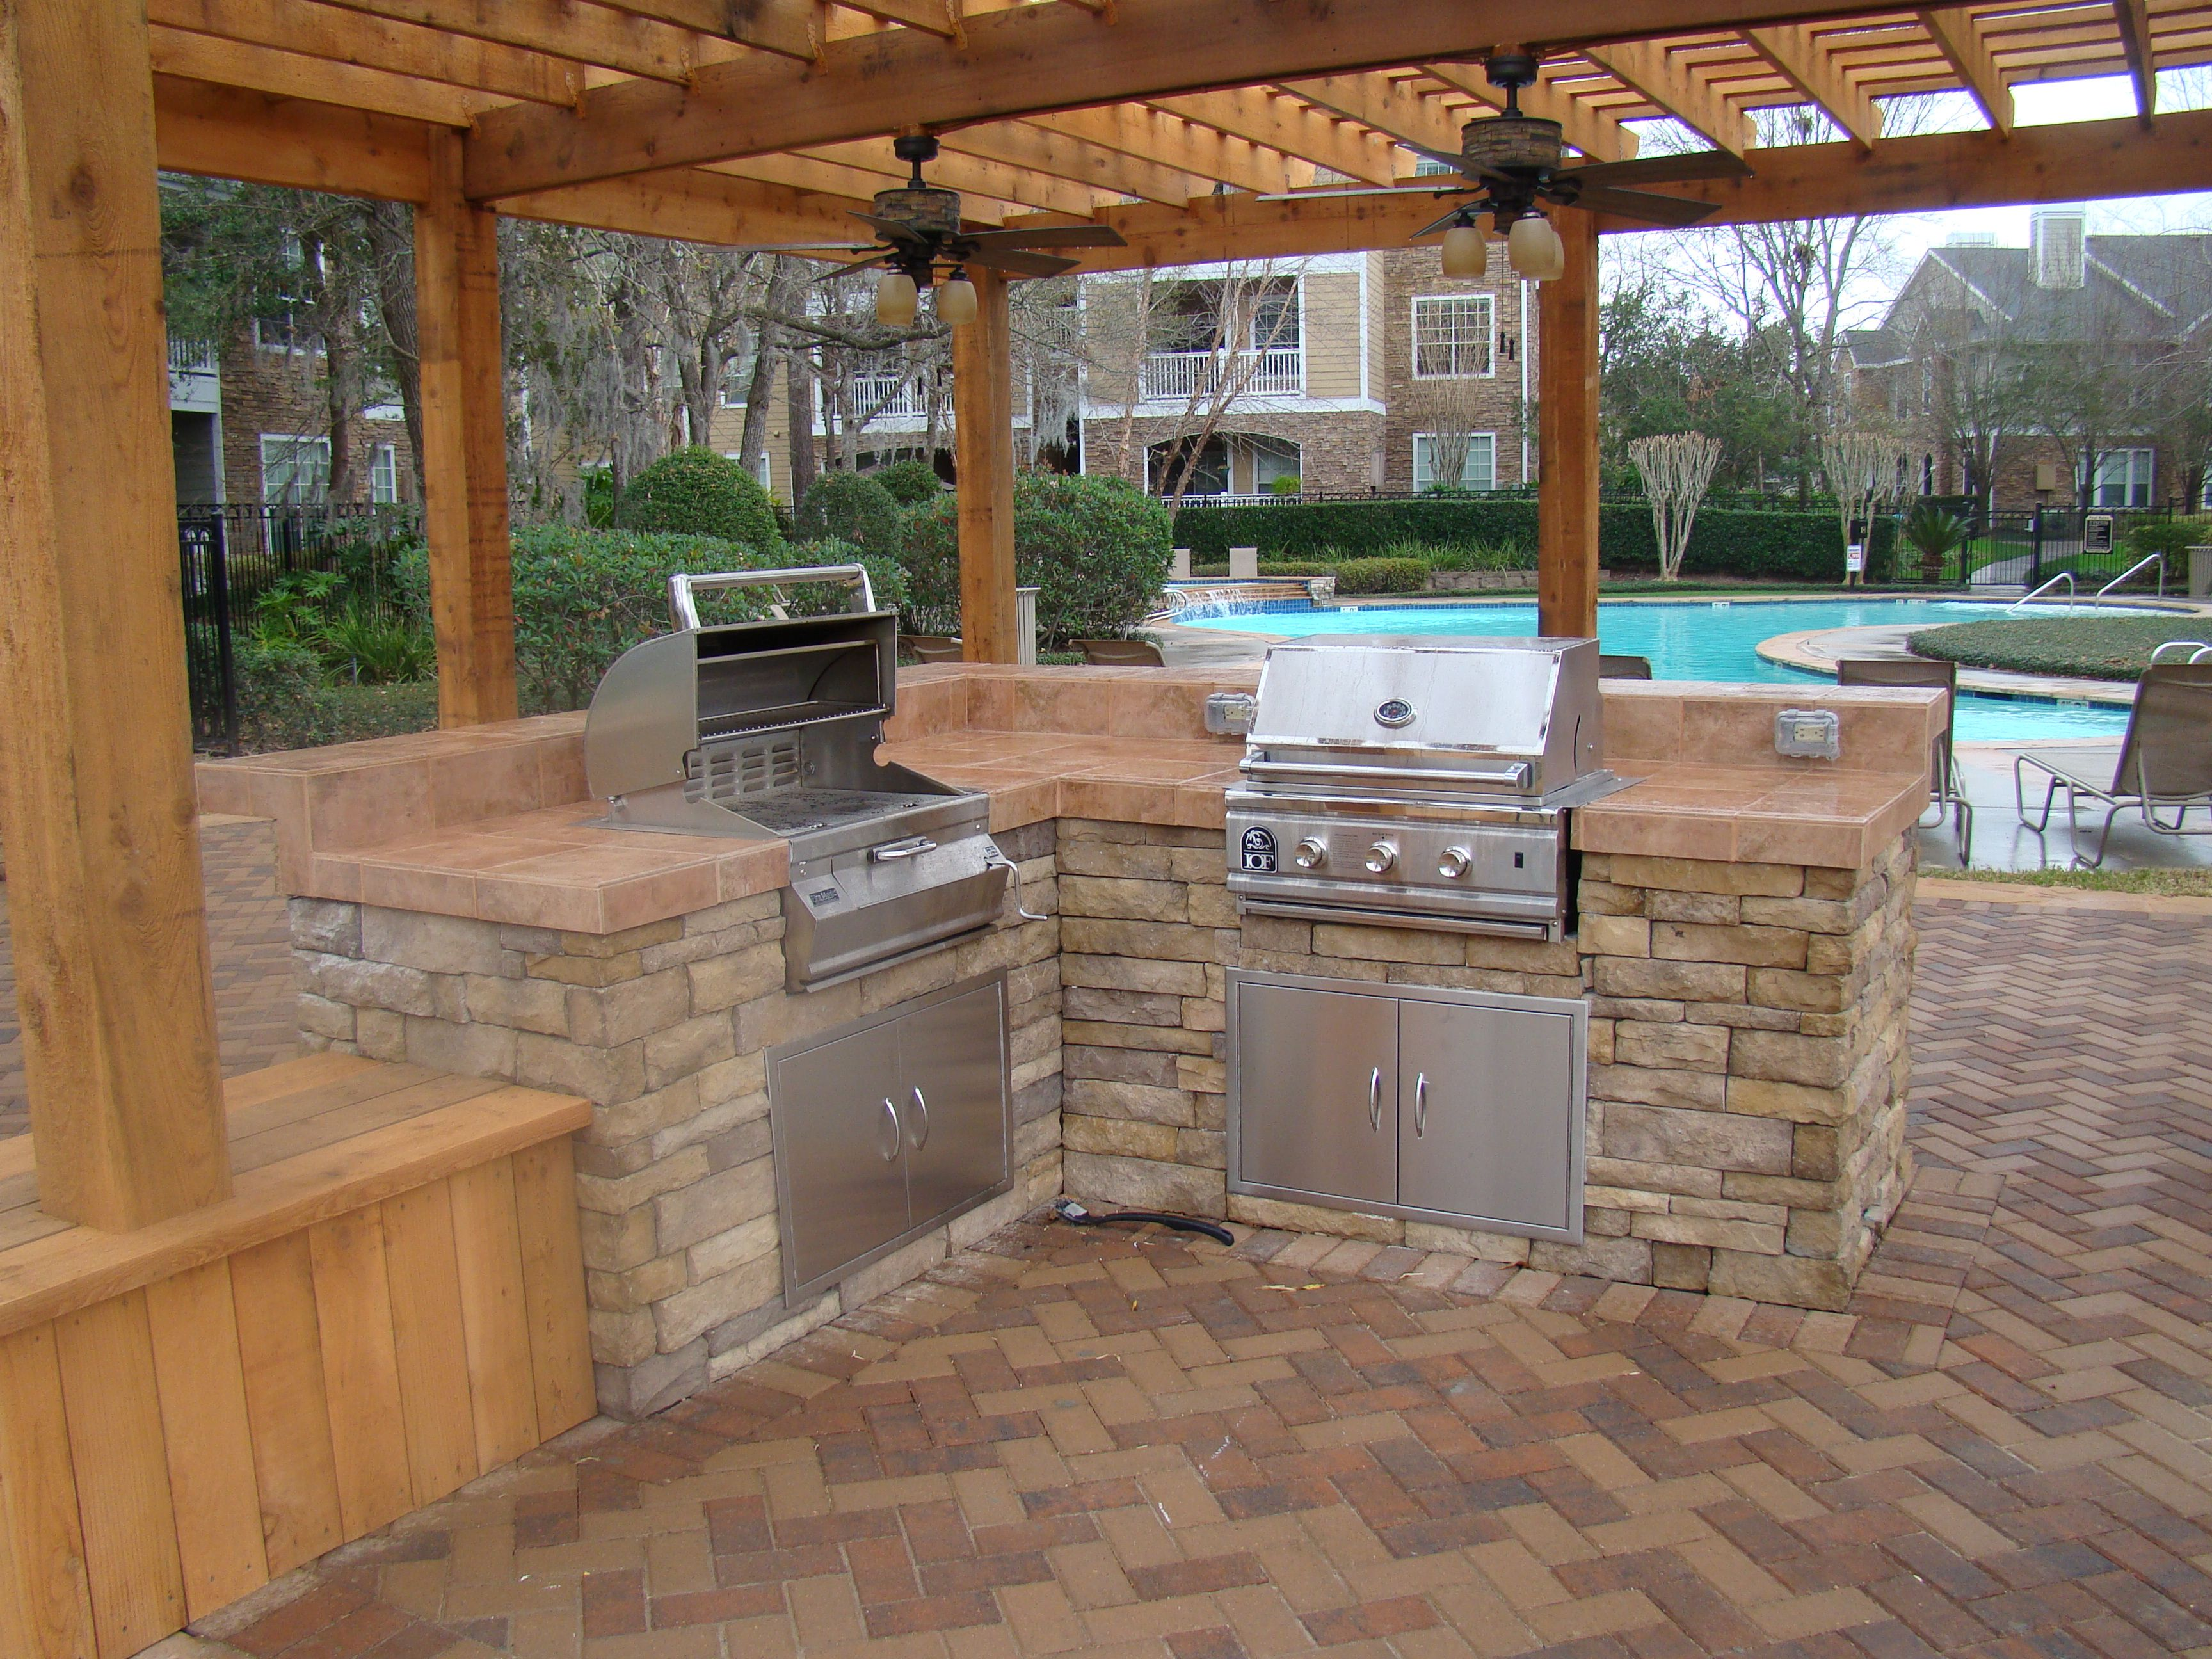 18 outdoor kitchen ideas for backyards kitchens backyard and outdoor kitchen plans on outdoor kitchen yard id=29552